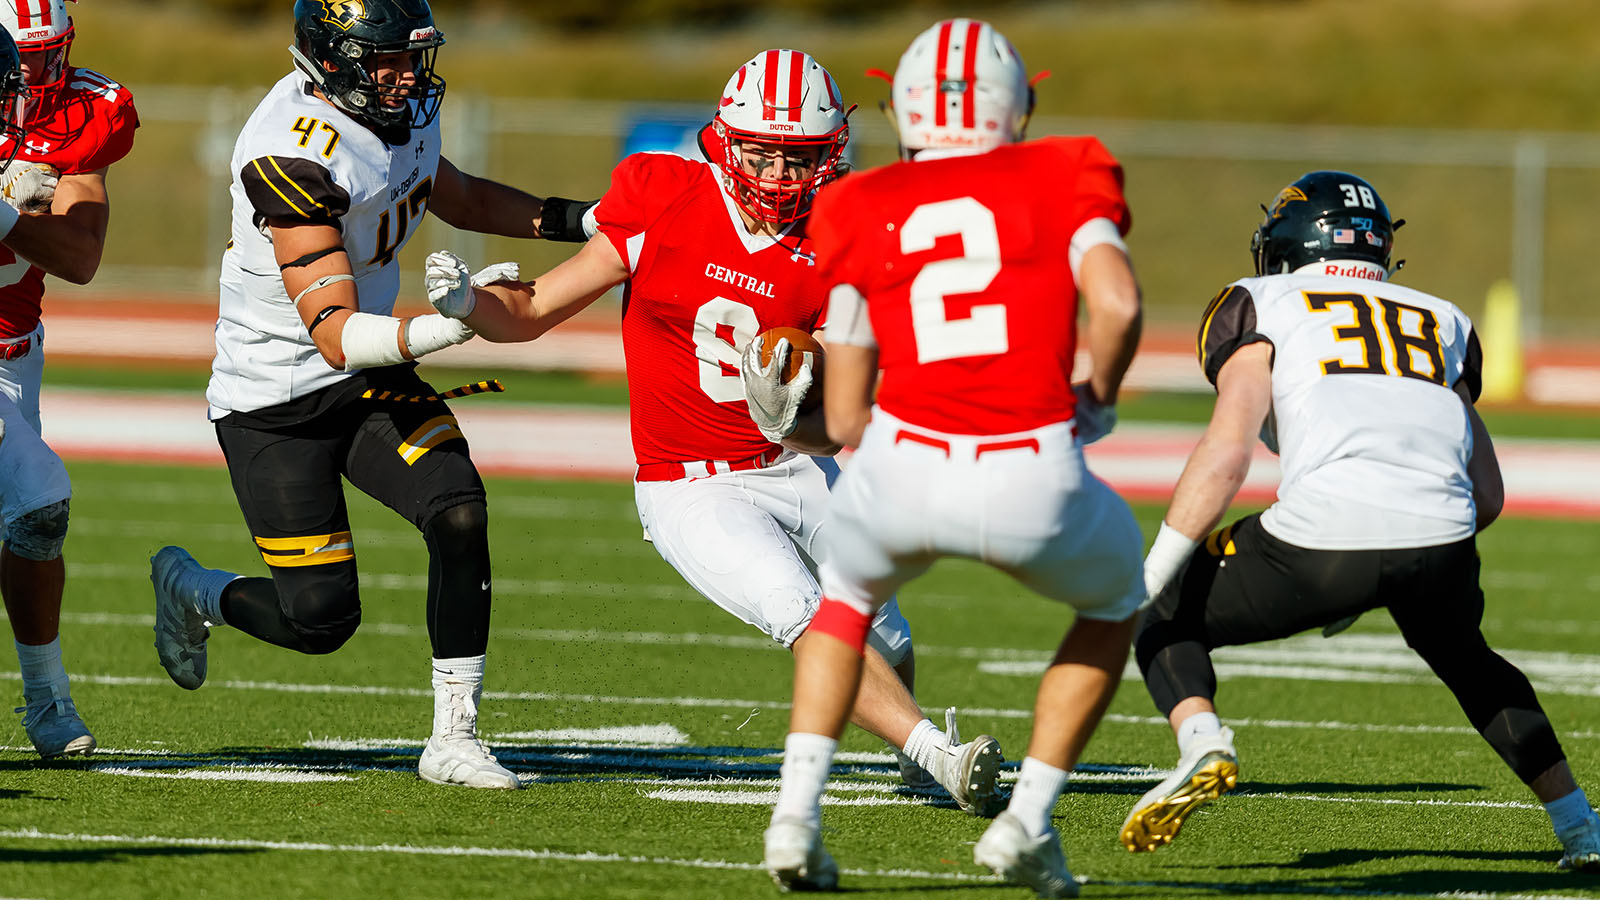 Central Faces Ncaa Football Playoff Road Obstacle At Wheaton